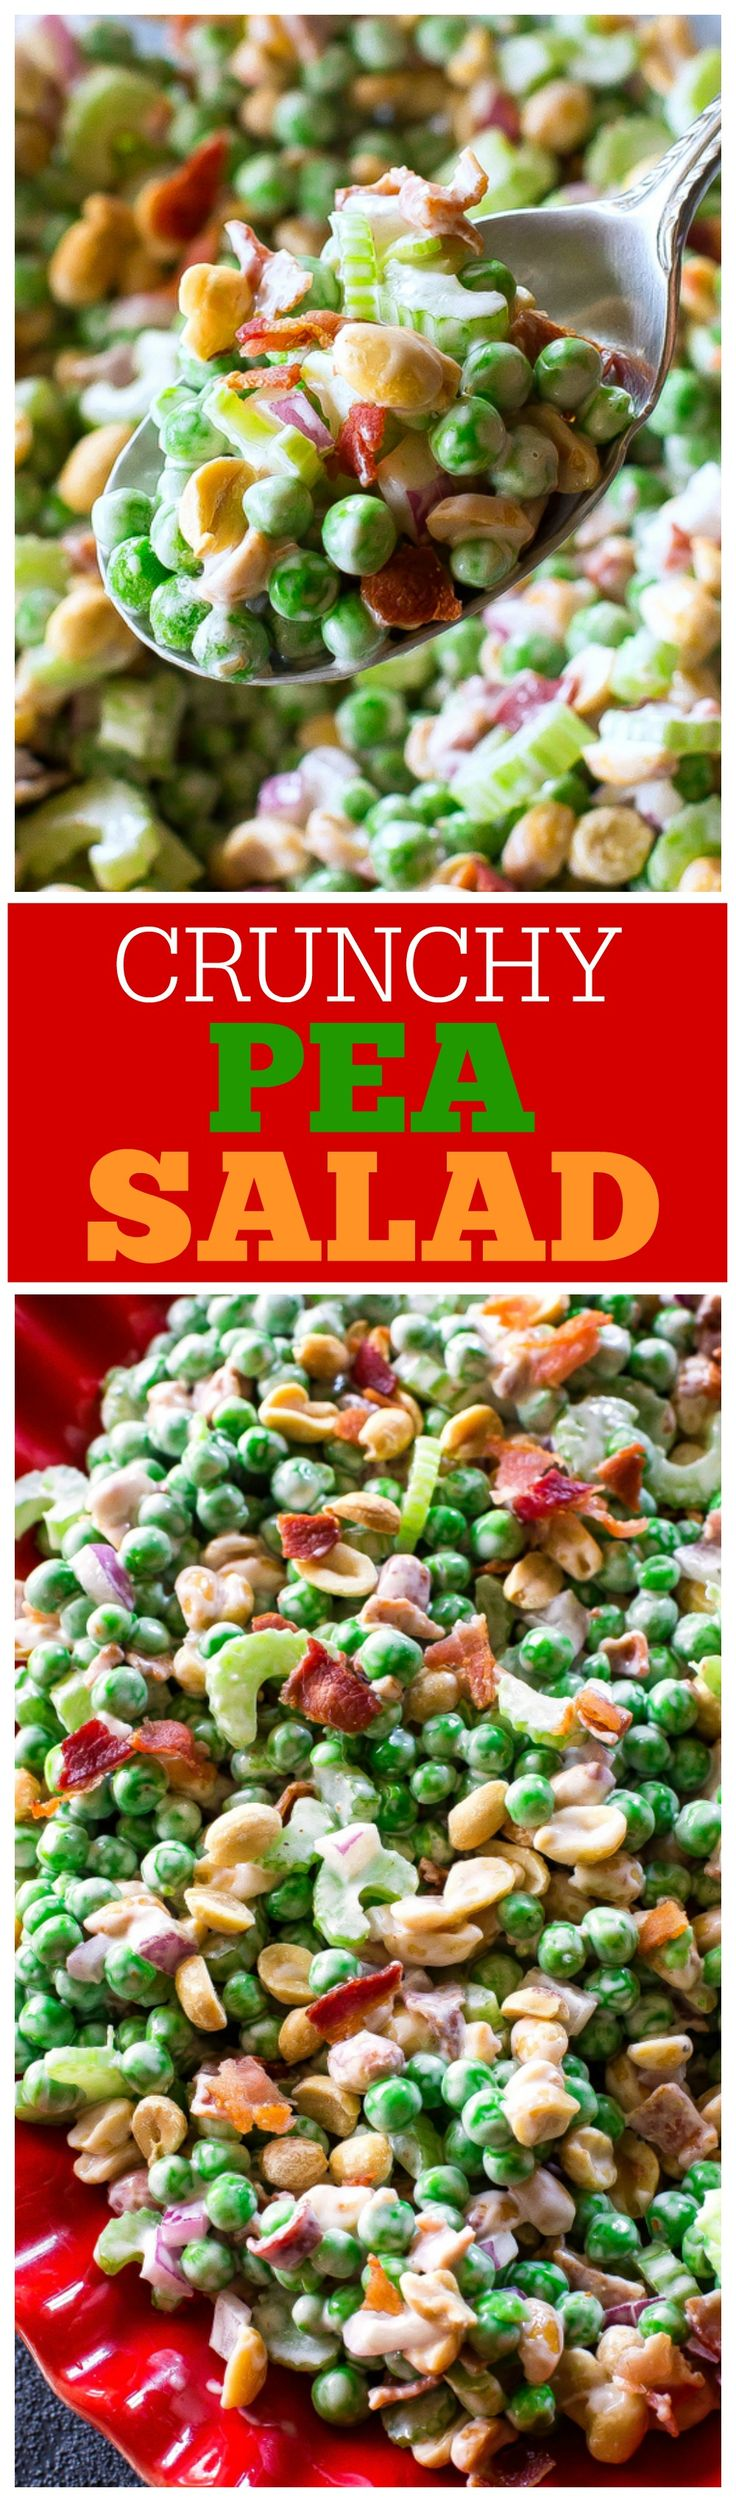 Crunchy Pea Salad - I know it sounds weird but trust me, it's good! Peas. nuts, bacon, celery...all for a refreshing salad. the-girl-who-ate-everything.com